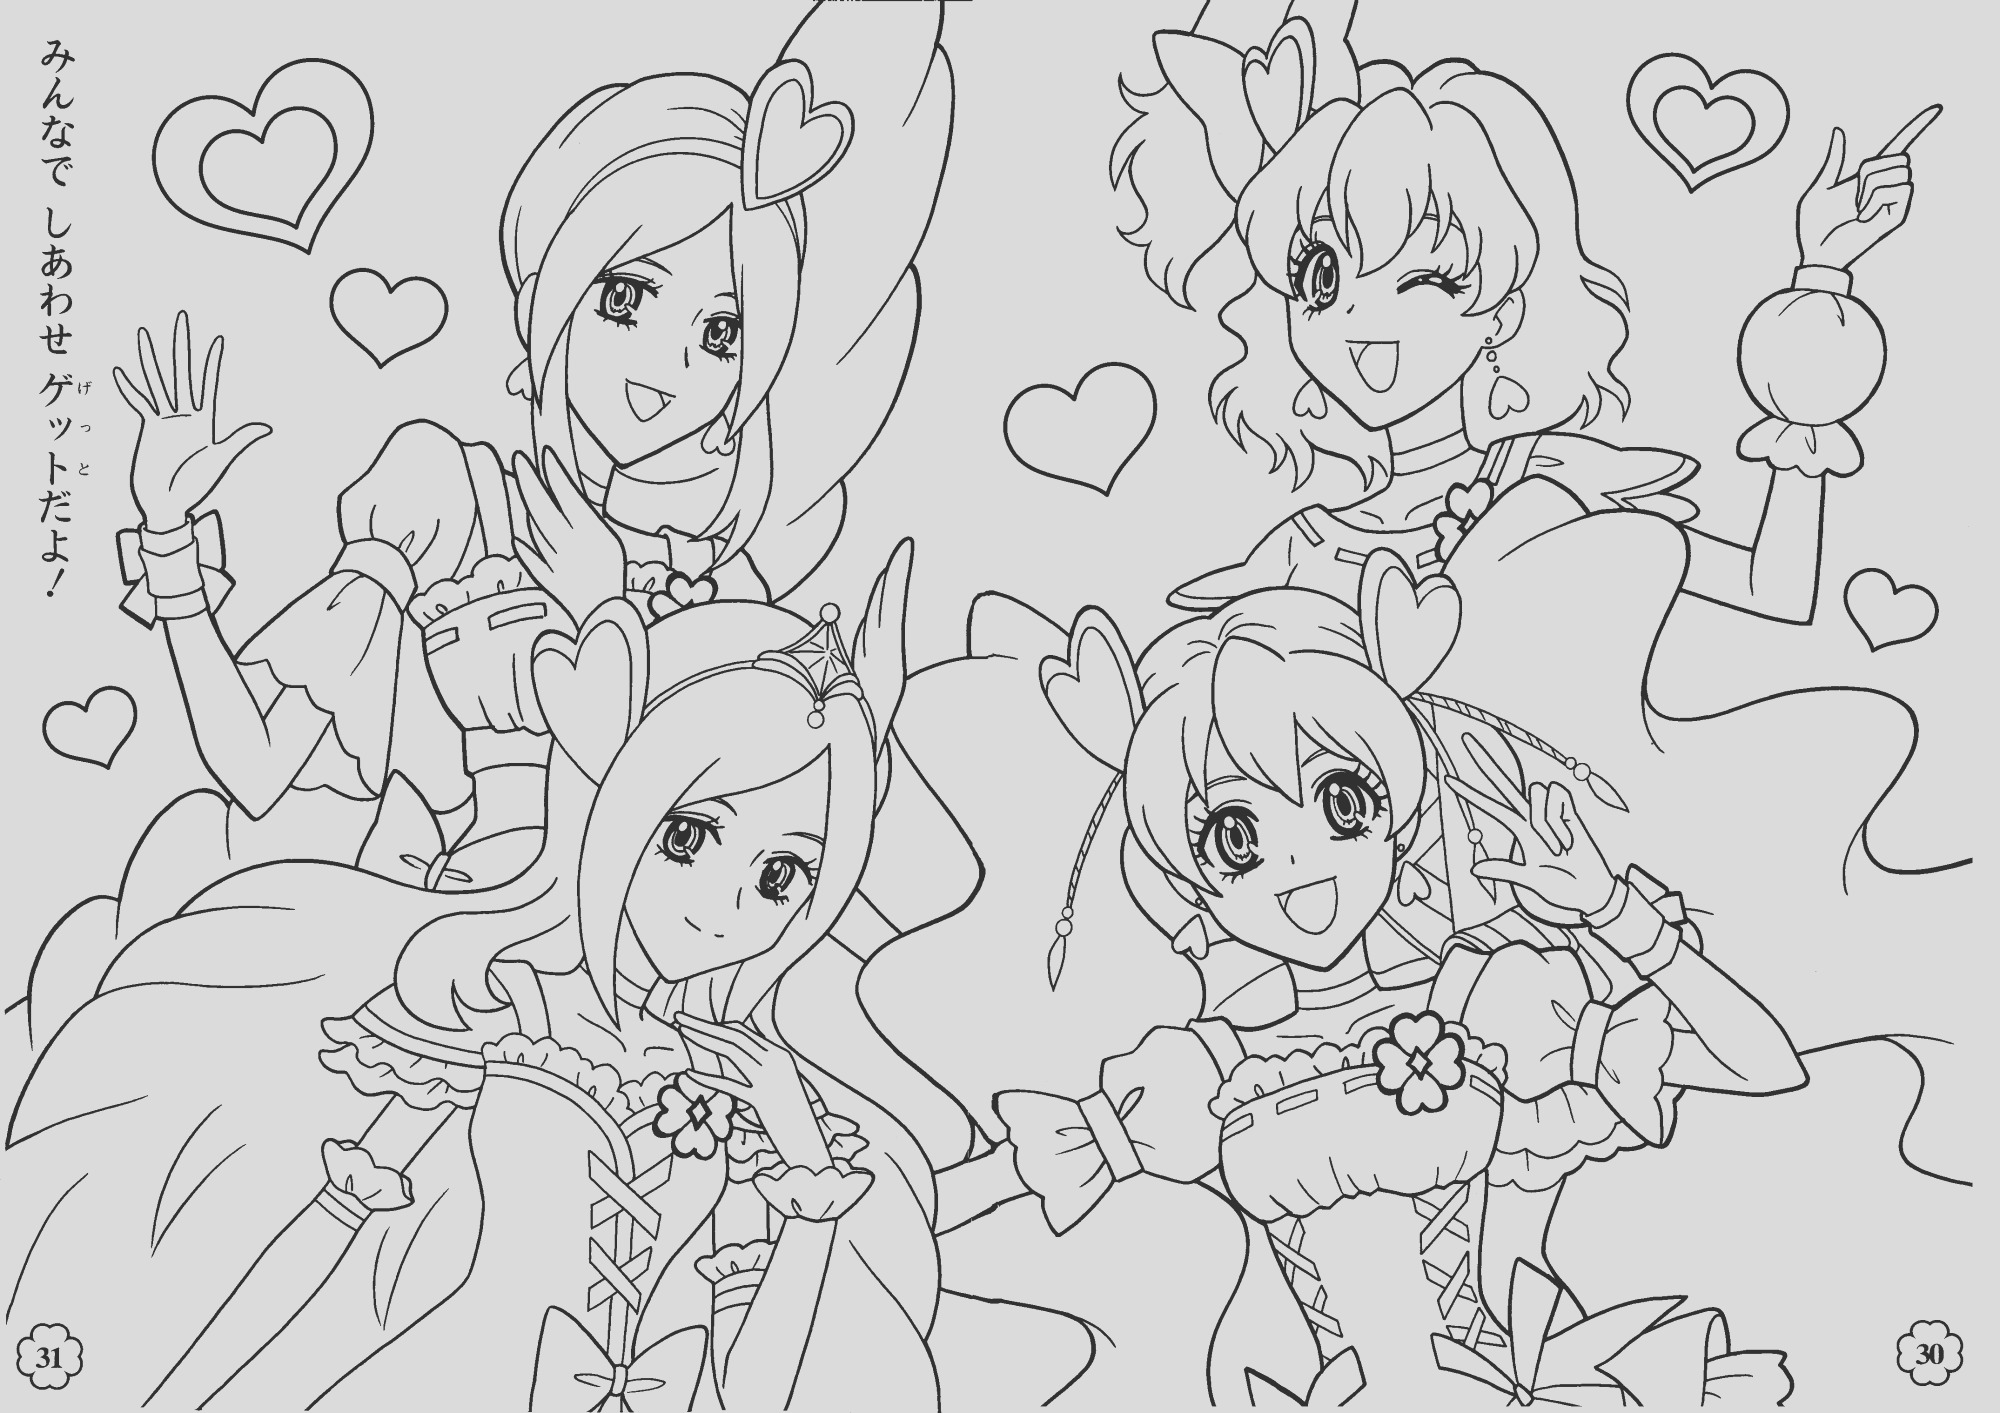 yes precure 5 coloring sketch templates